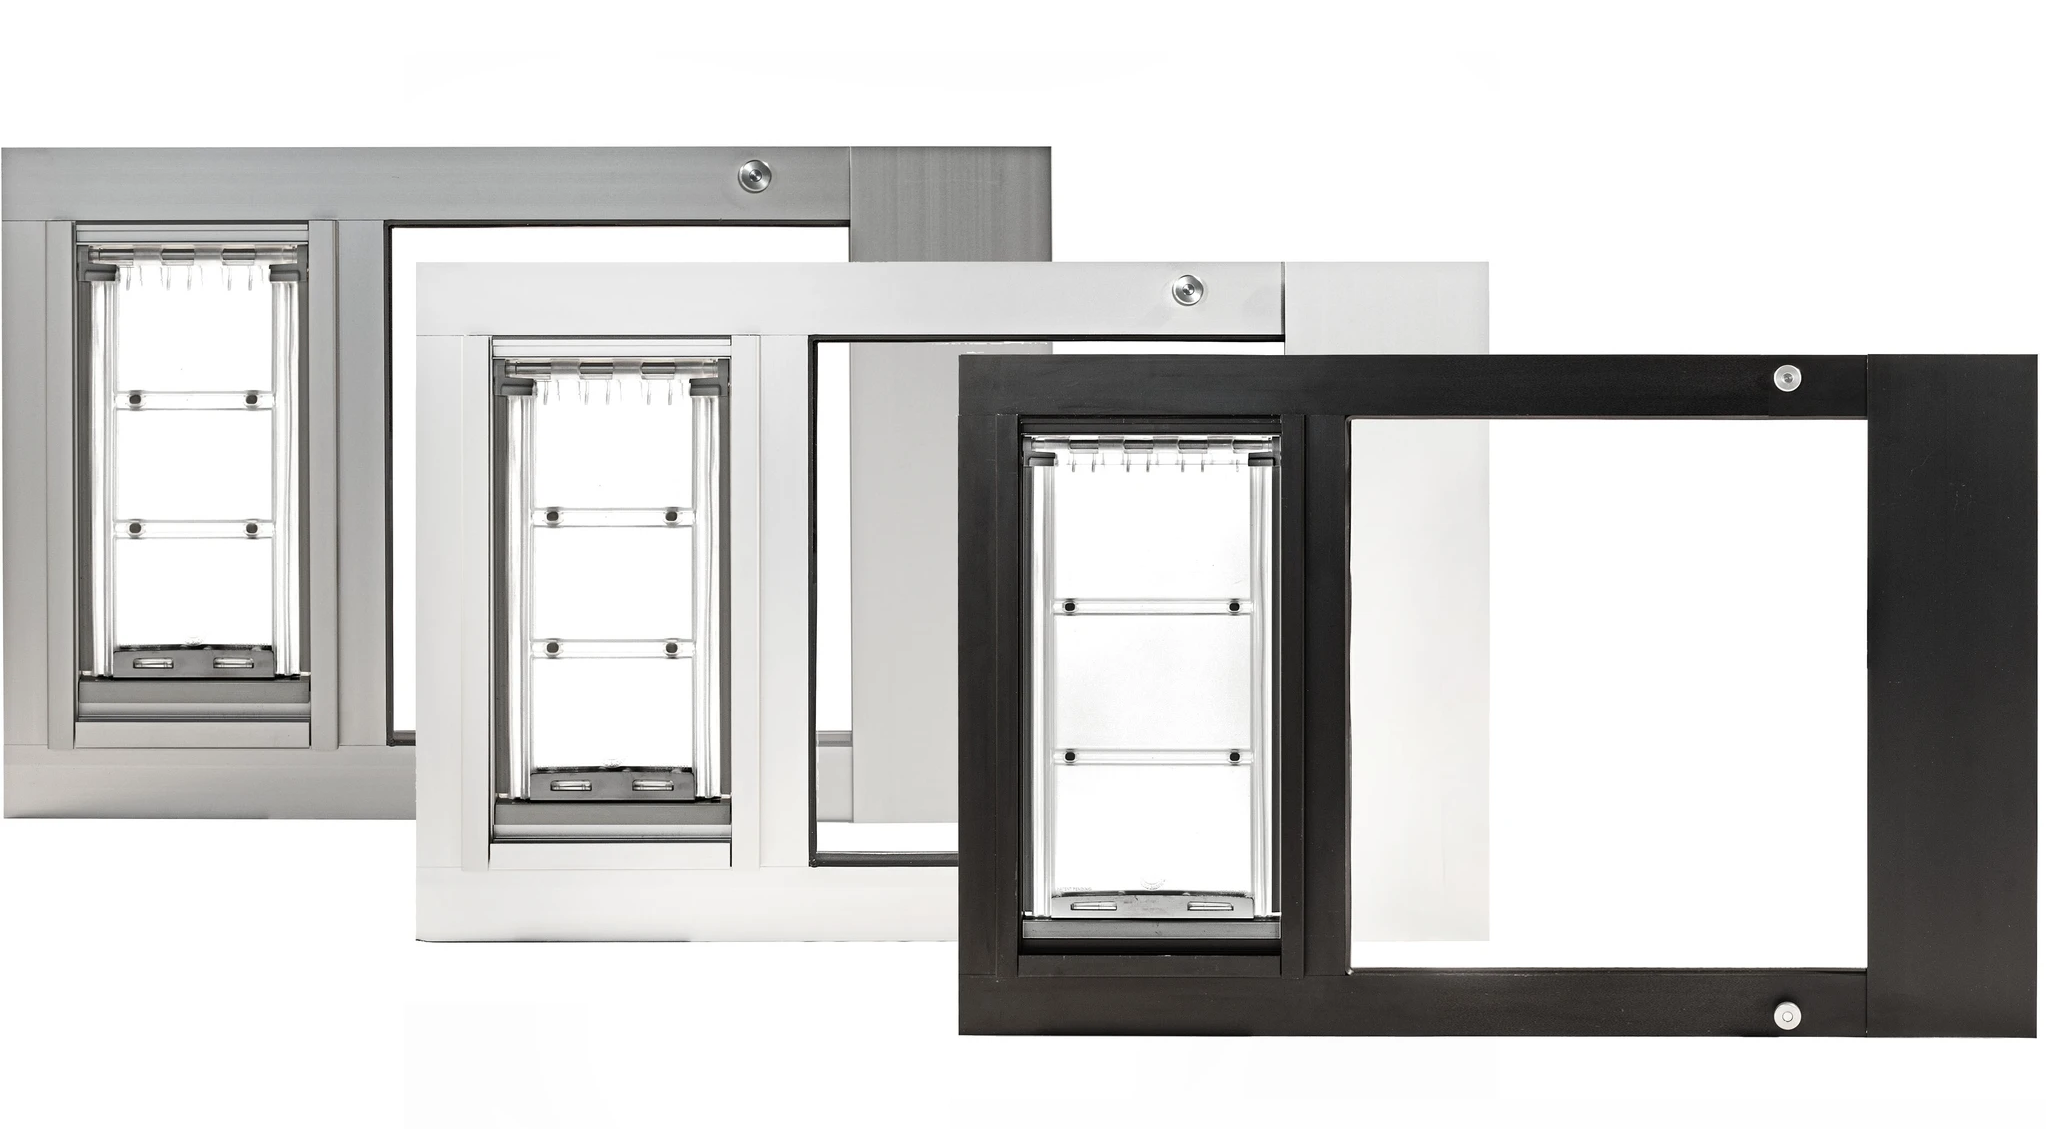 The Endura Flap Thermo Sash Pet Door in white, bronze, and brushed aluminum